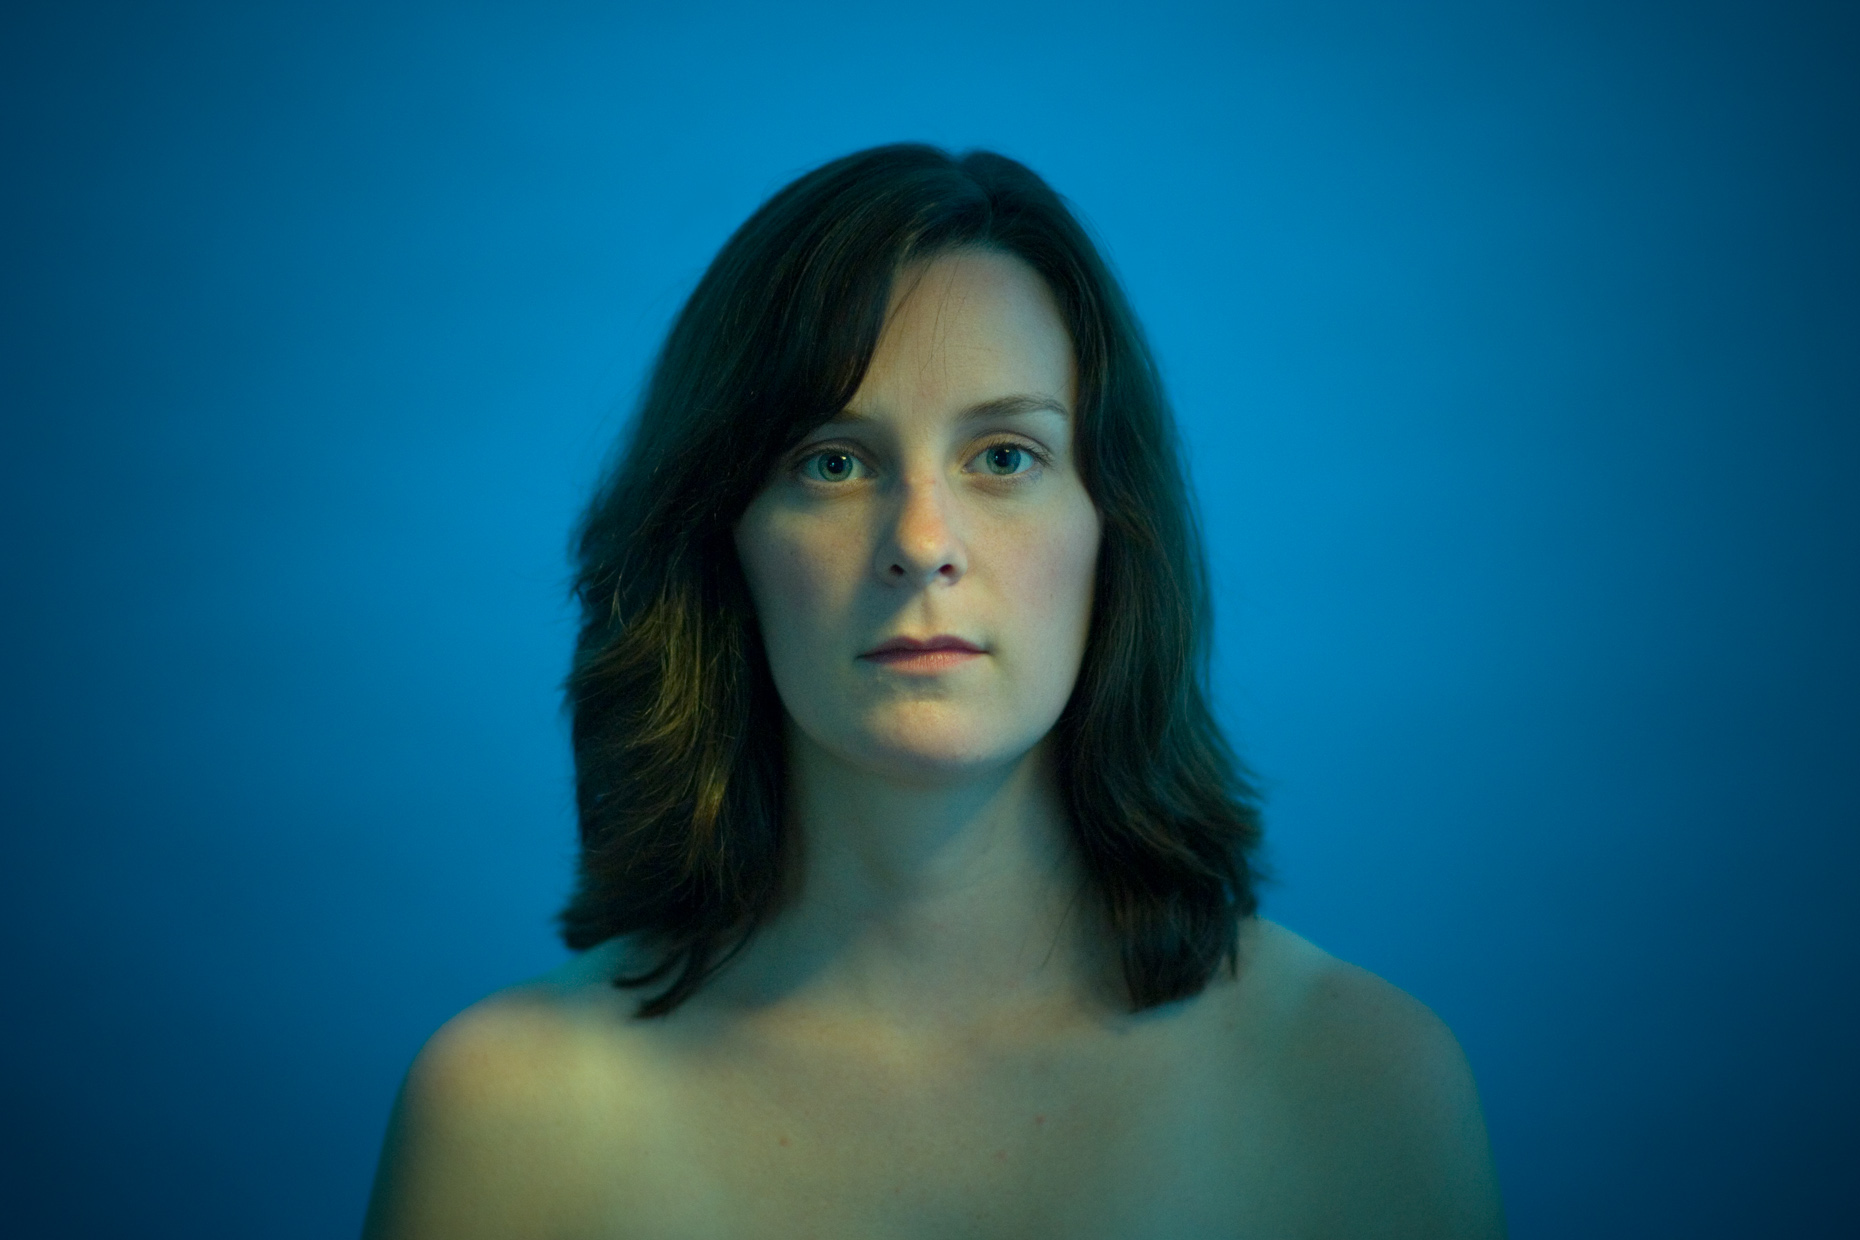 portraits-woman-color-blue-headshots